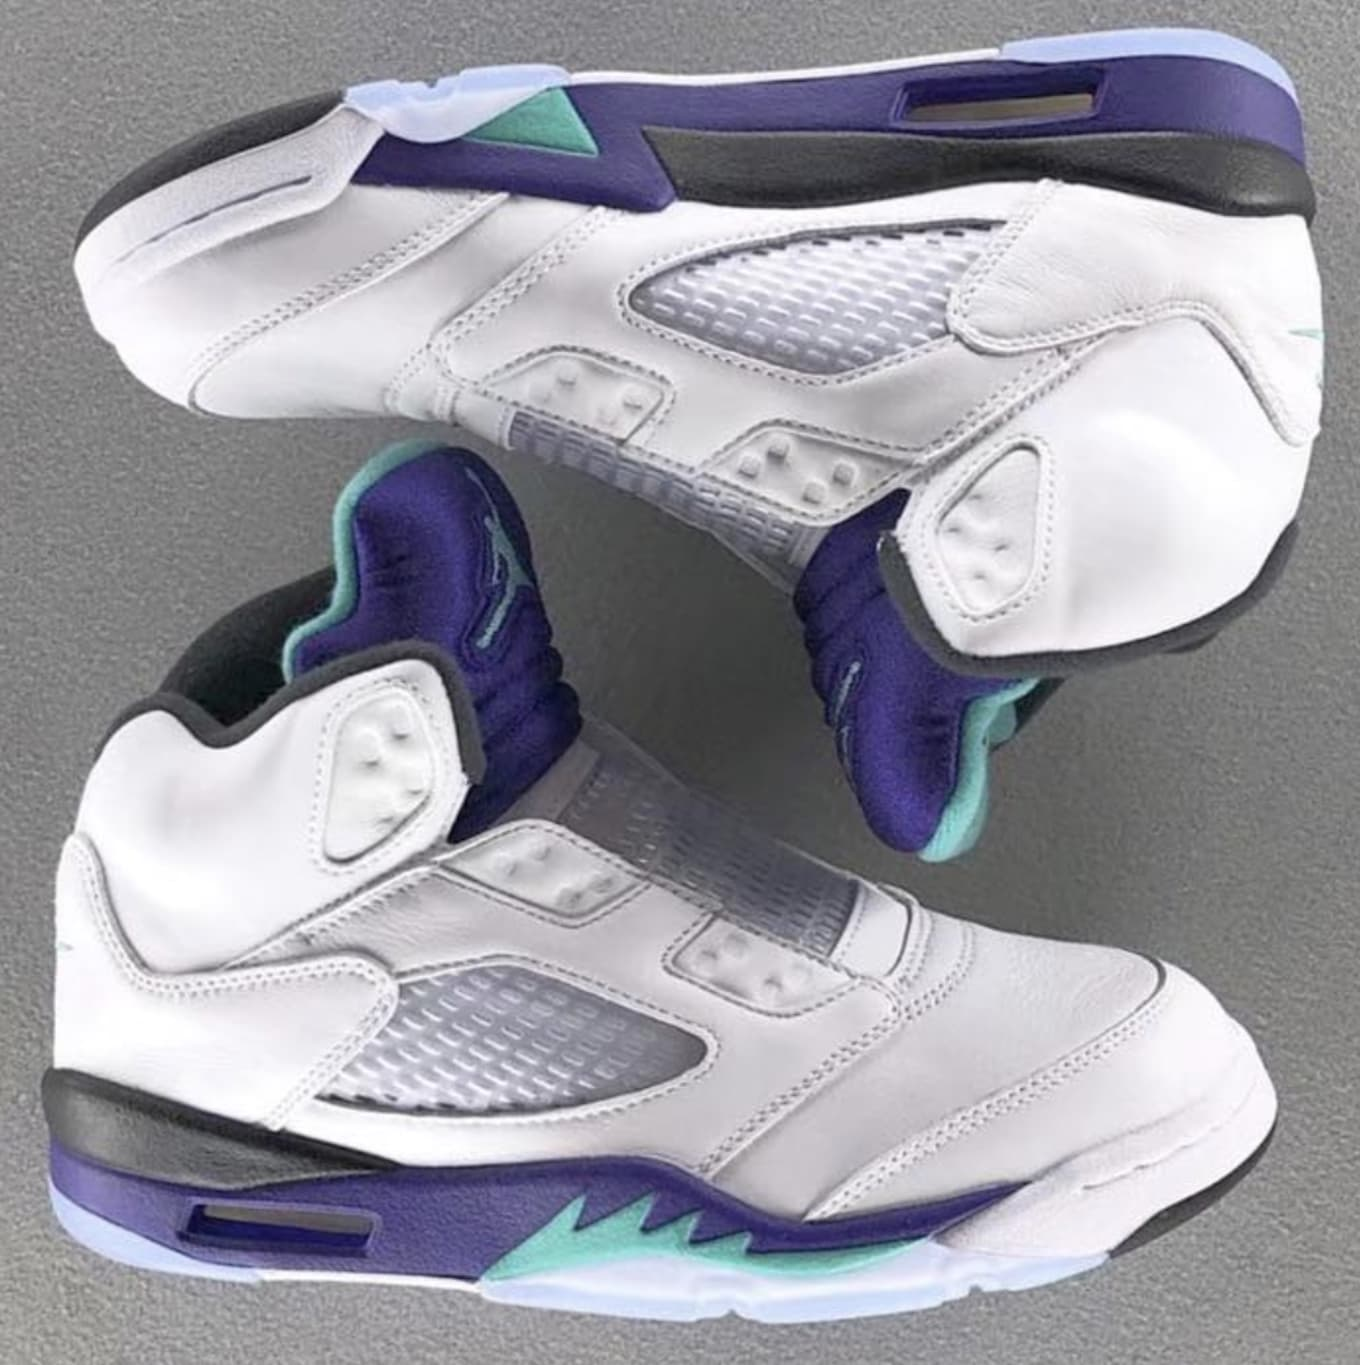 4bbc80067cc866 Air Jordan V 5 Retro NRG  White Grape Ice Black New Emerald  2018 ...